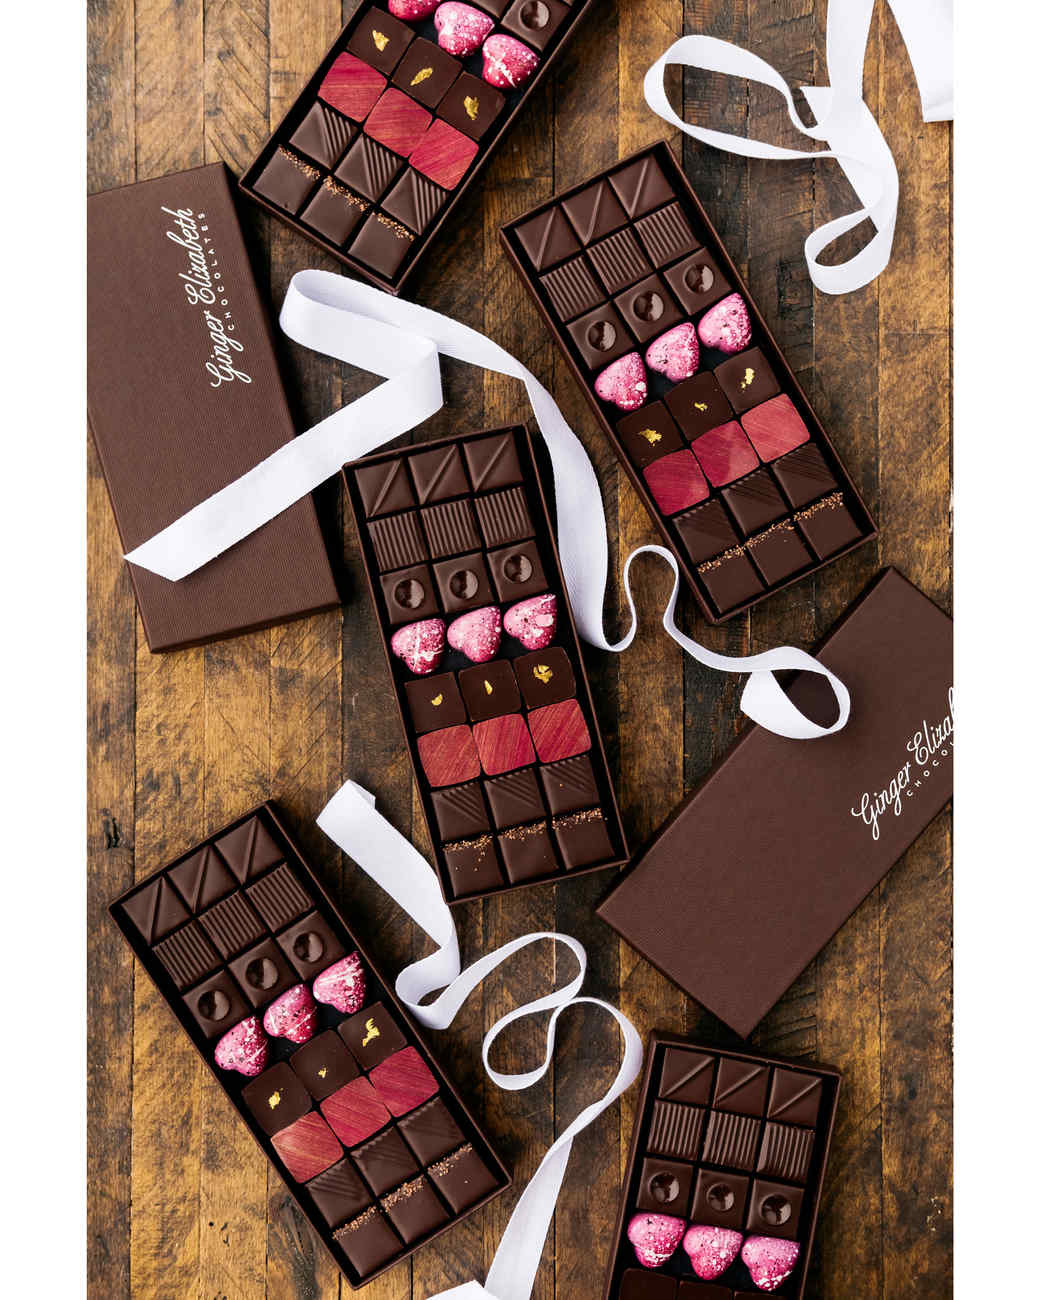 ginger elizabeth chocolate boxes and ribbons